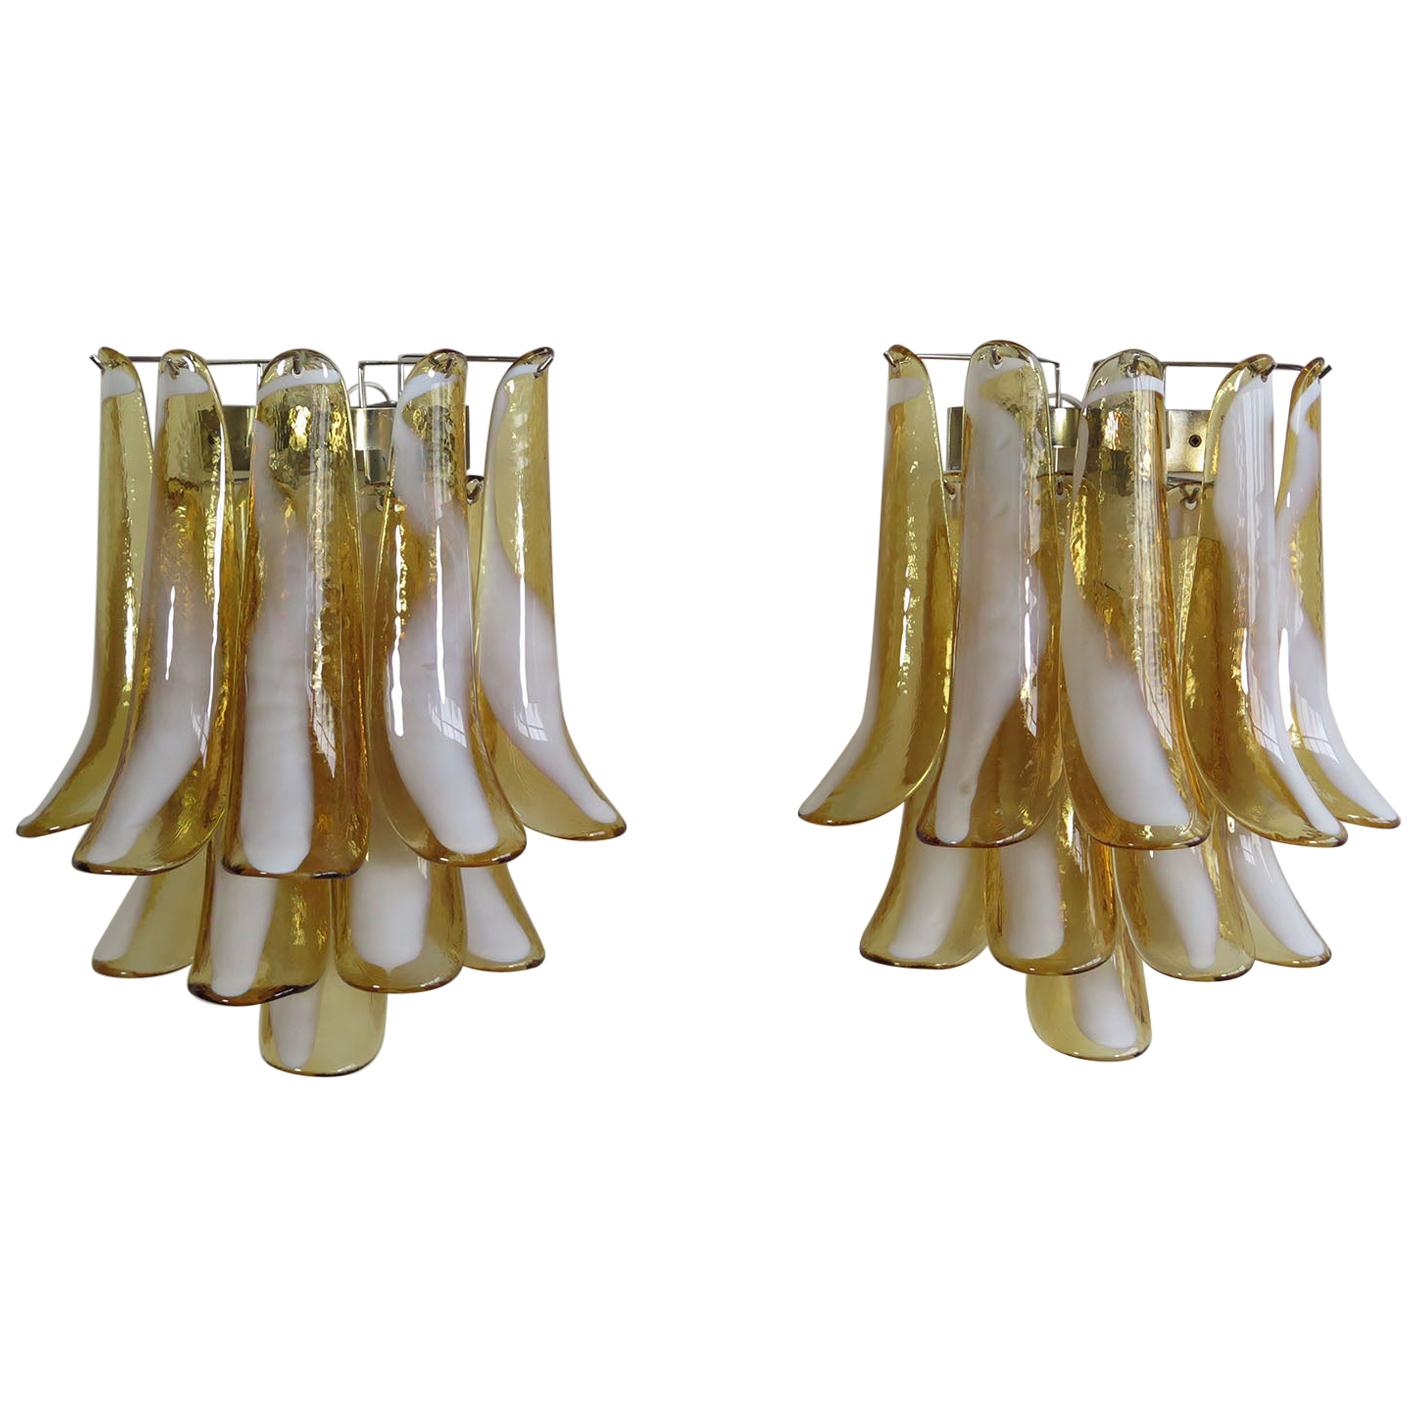 1970's Pair of Vintage Italian Murano Wall Lights in the Manner of Mazzega, Car